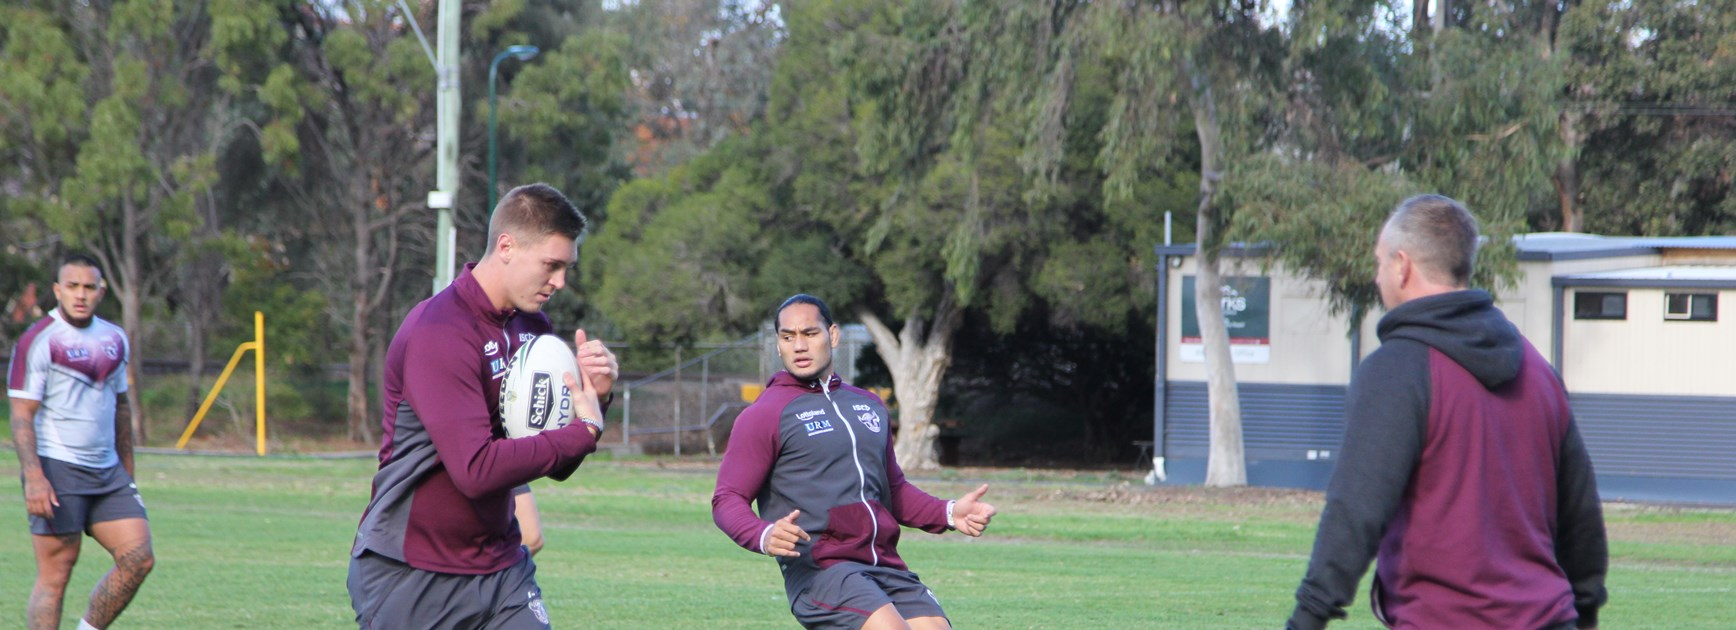 NRL Preview: Wedding or Manly?